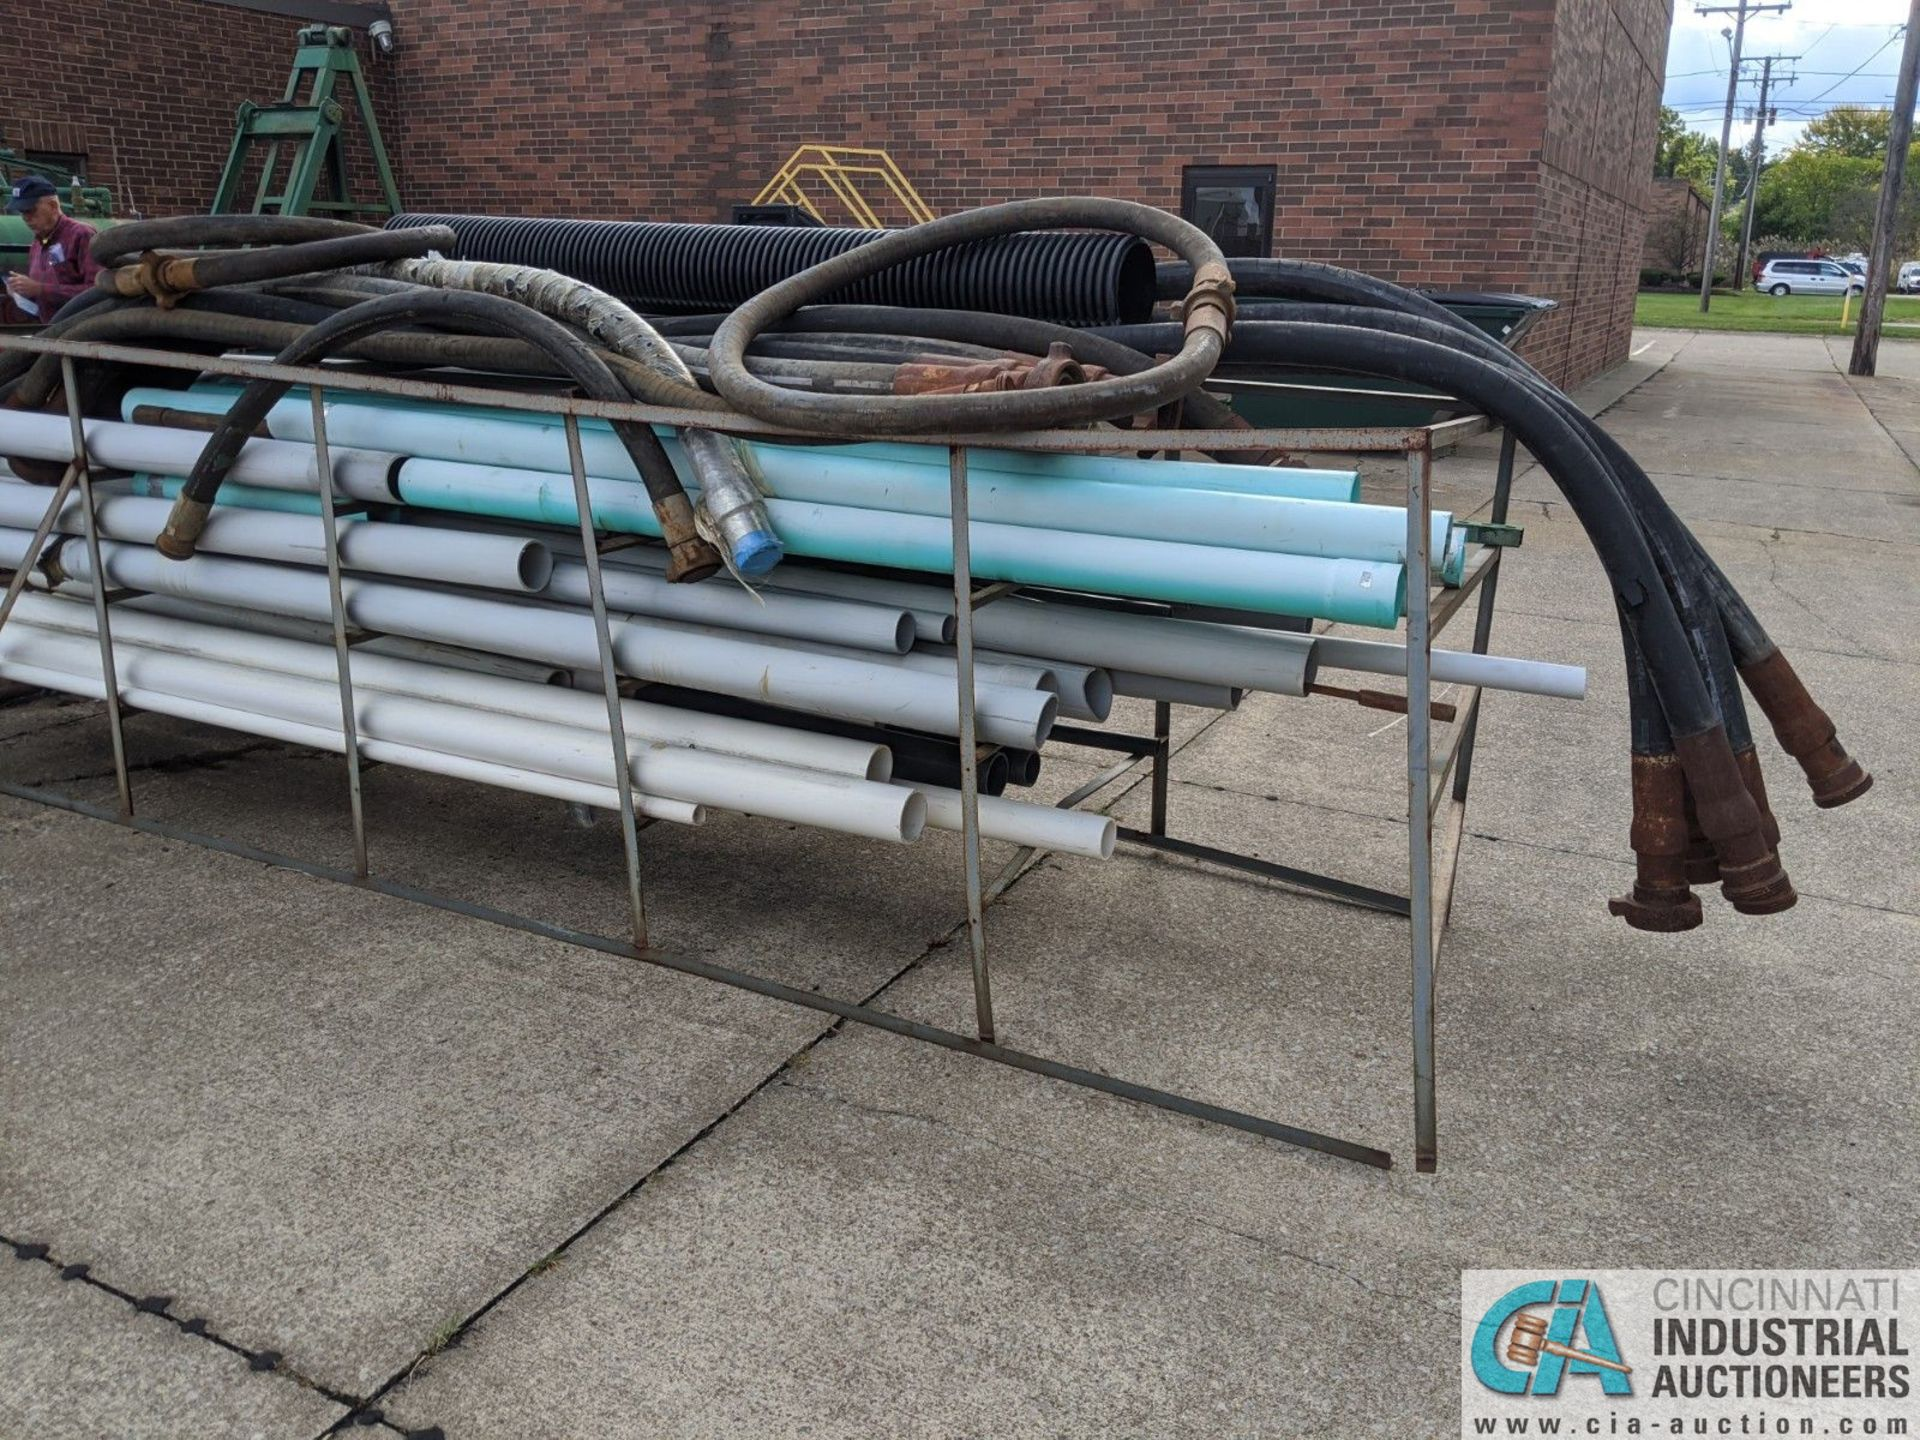 (LOT) RACK W/ PLASTIC PIPE (8635 East Ave., Mentor, OH 44060 - John Magnasum: 440-667-9414) - Image 2 of 3